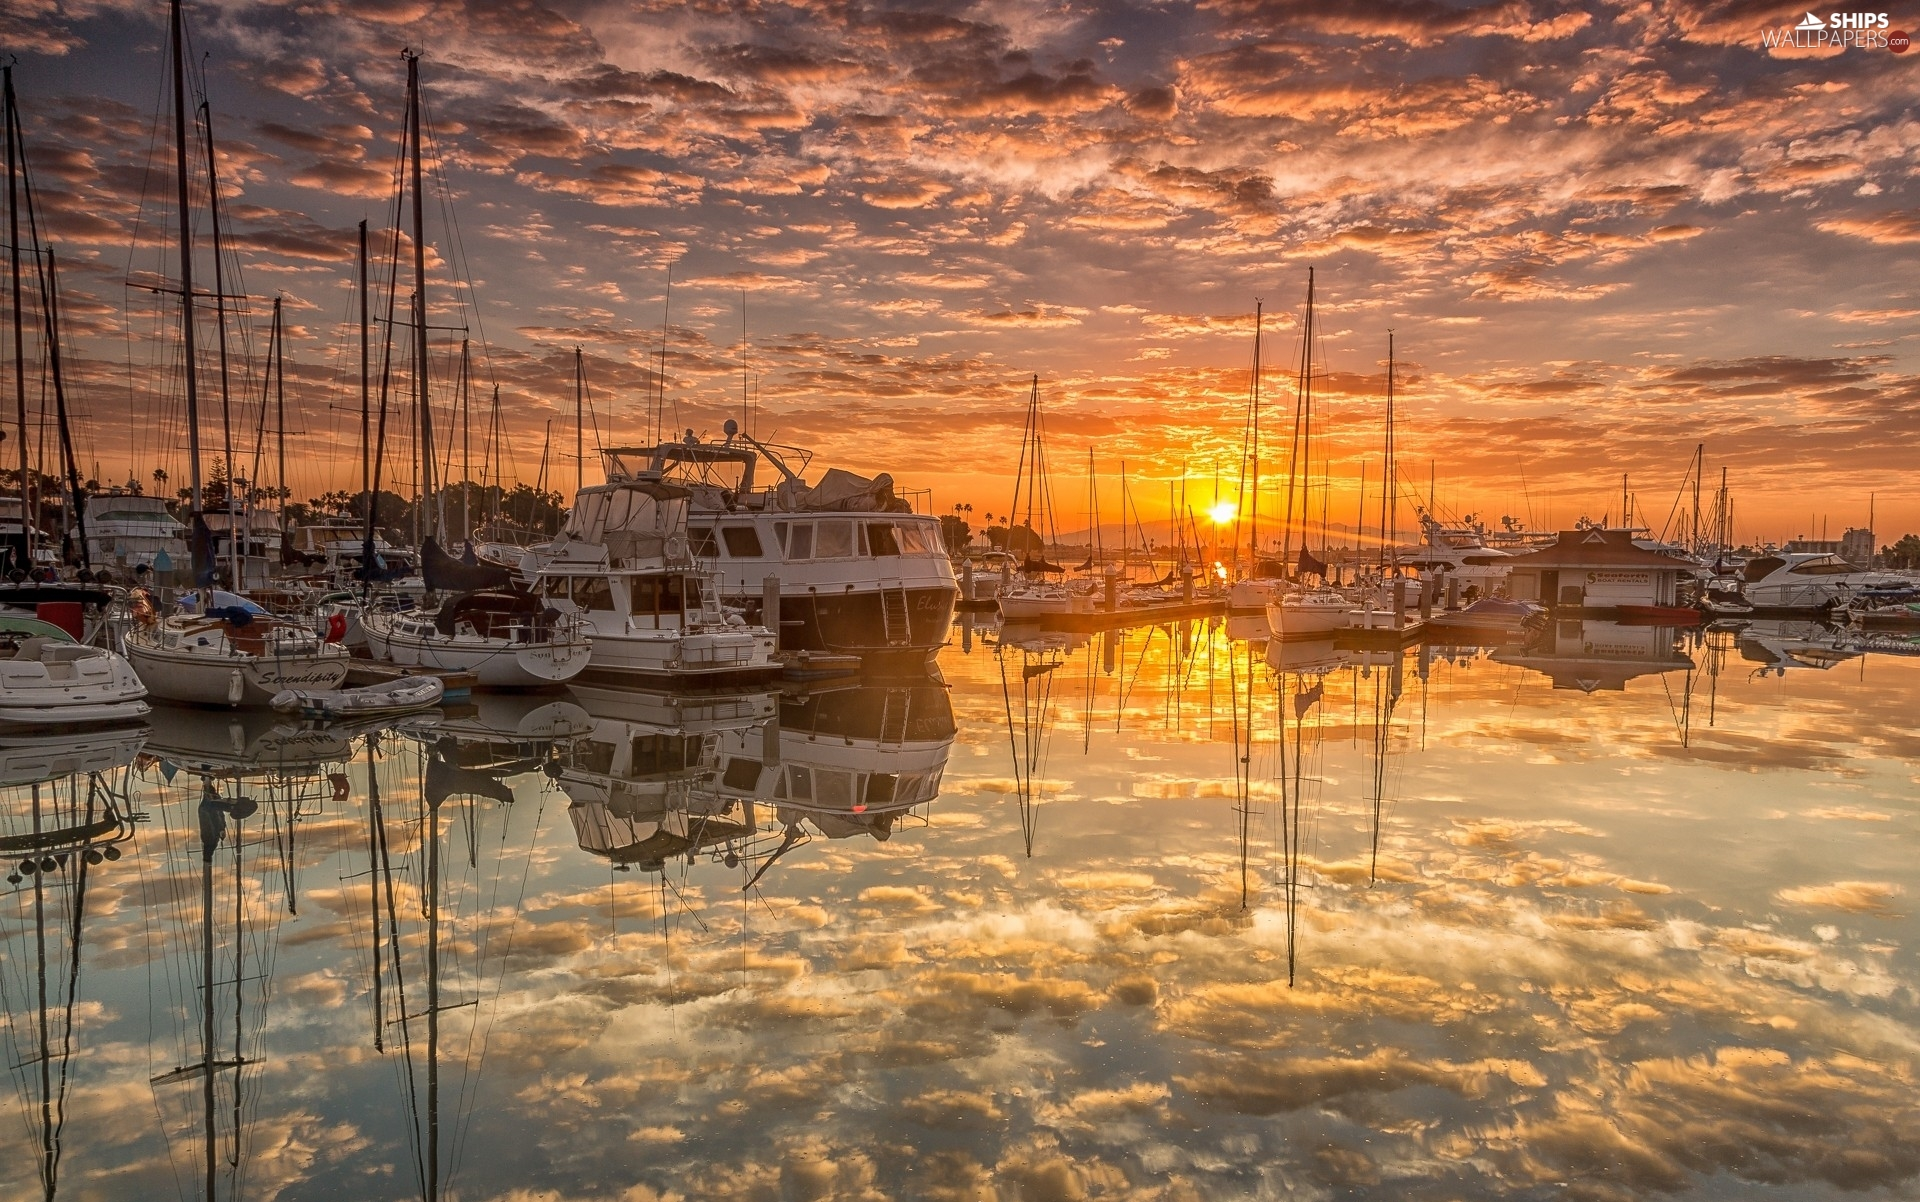 Harbour, Yachts, clouds, Sunrise, reflection, The United States, State of California, Sailboats, San Diego